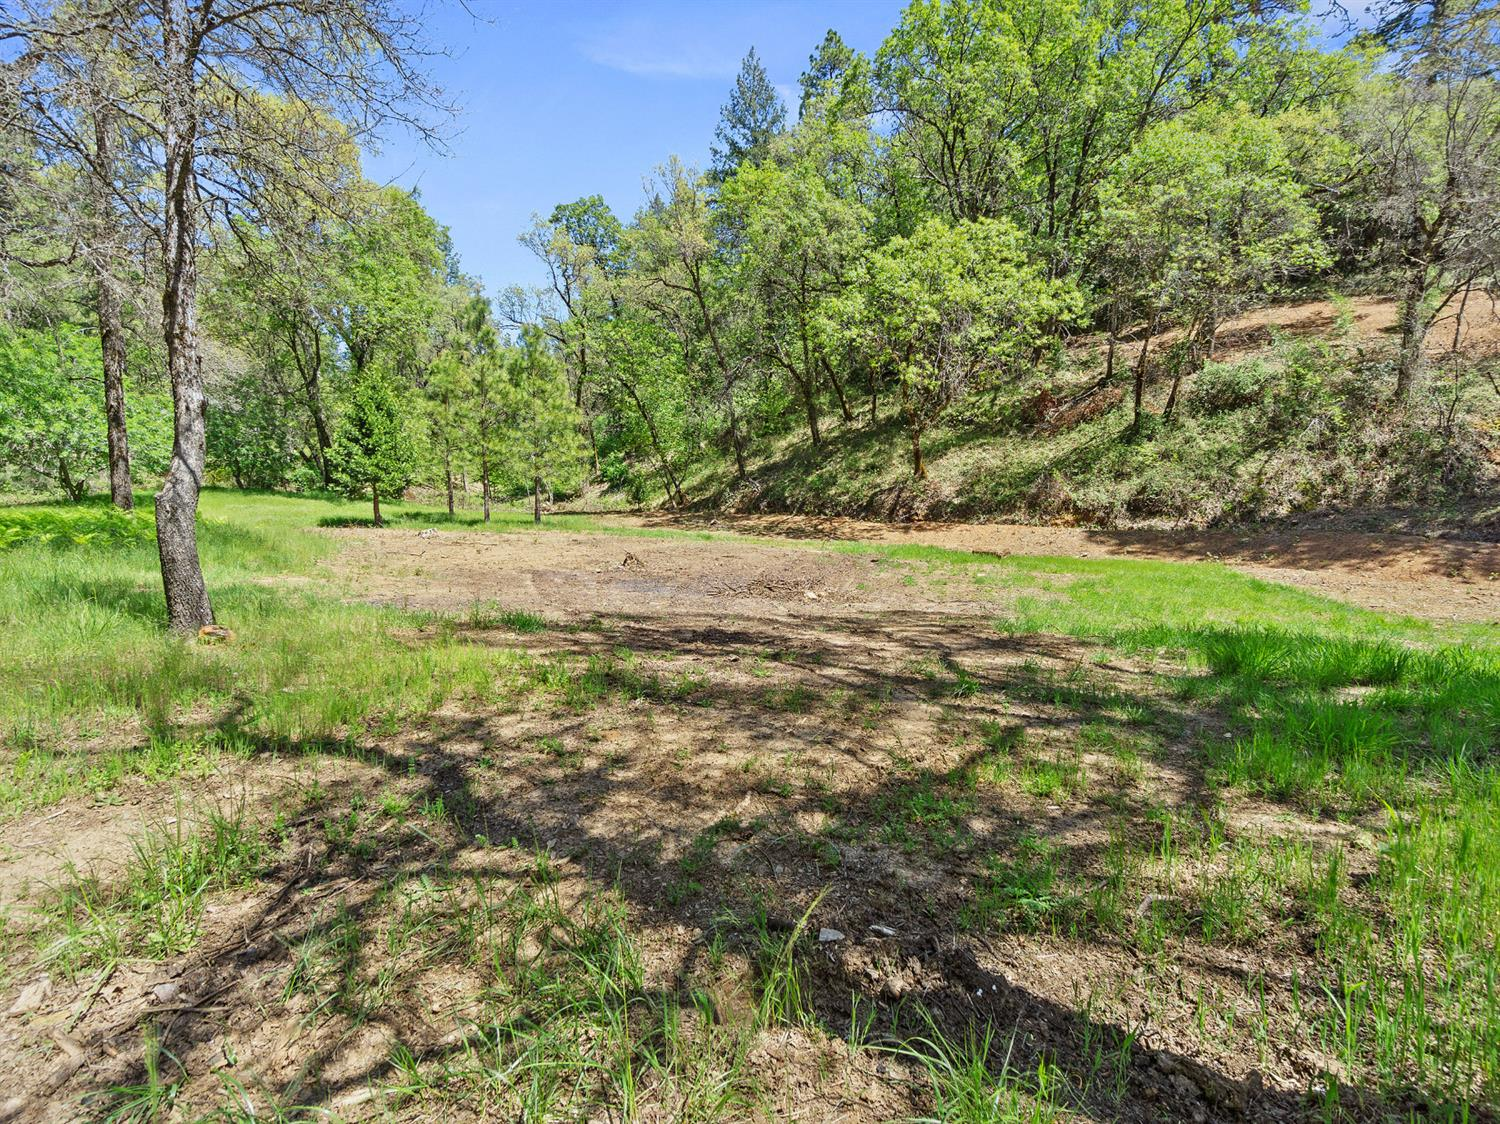 3.05 Acres in the city of Placerville! Large, level area to build the home of your dreams. EID water meter paid, electrical, and mostly fenced. Only needs septic. Good orientation for solar. No HOA. Restaurants, shopping, medical, biking, hiking, wineries, Apple Hill, and schools all just minutes away.